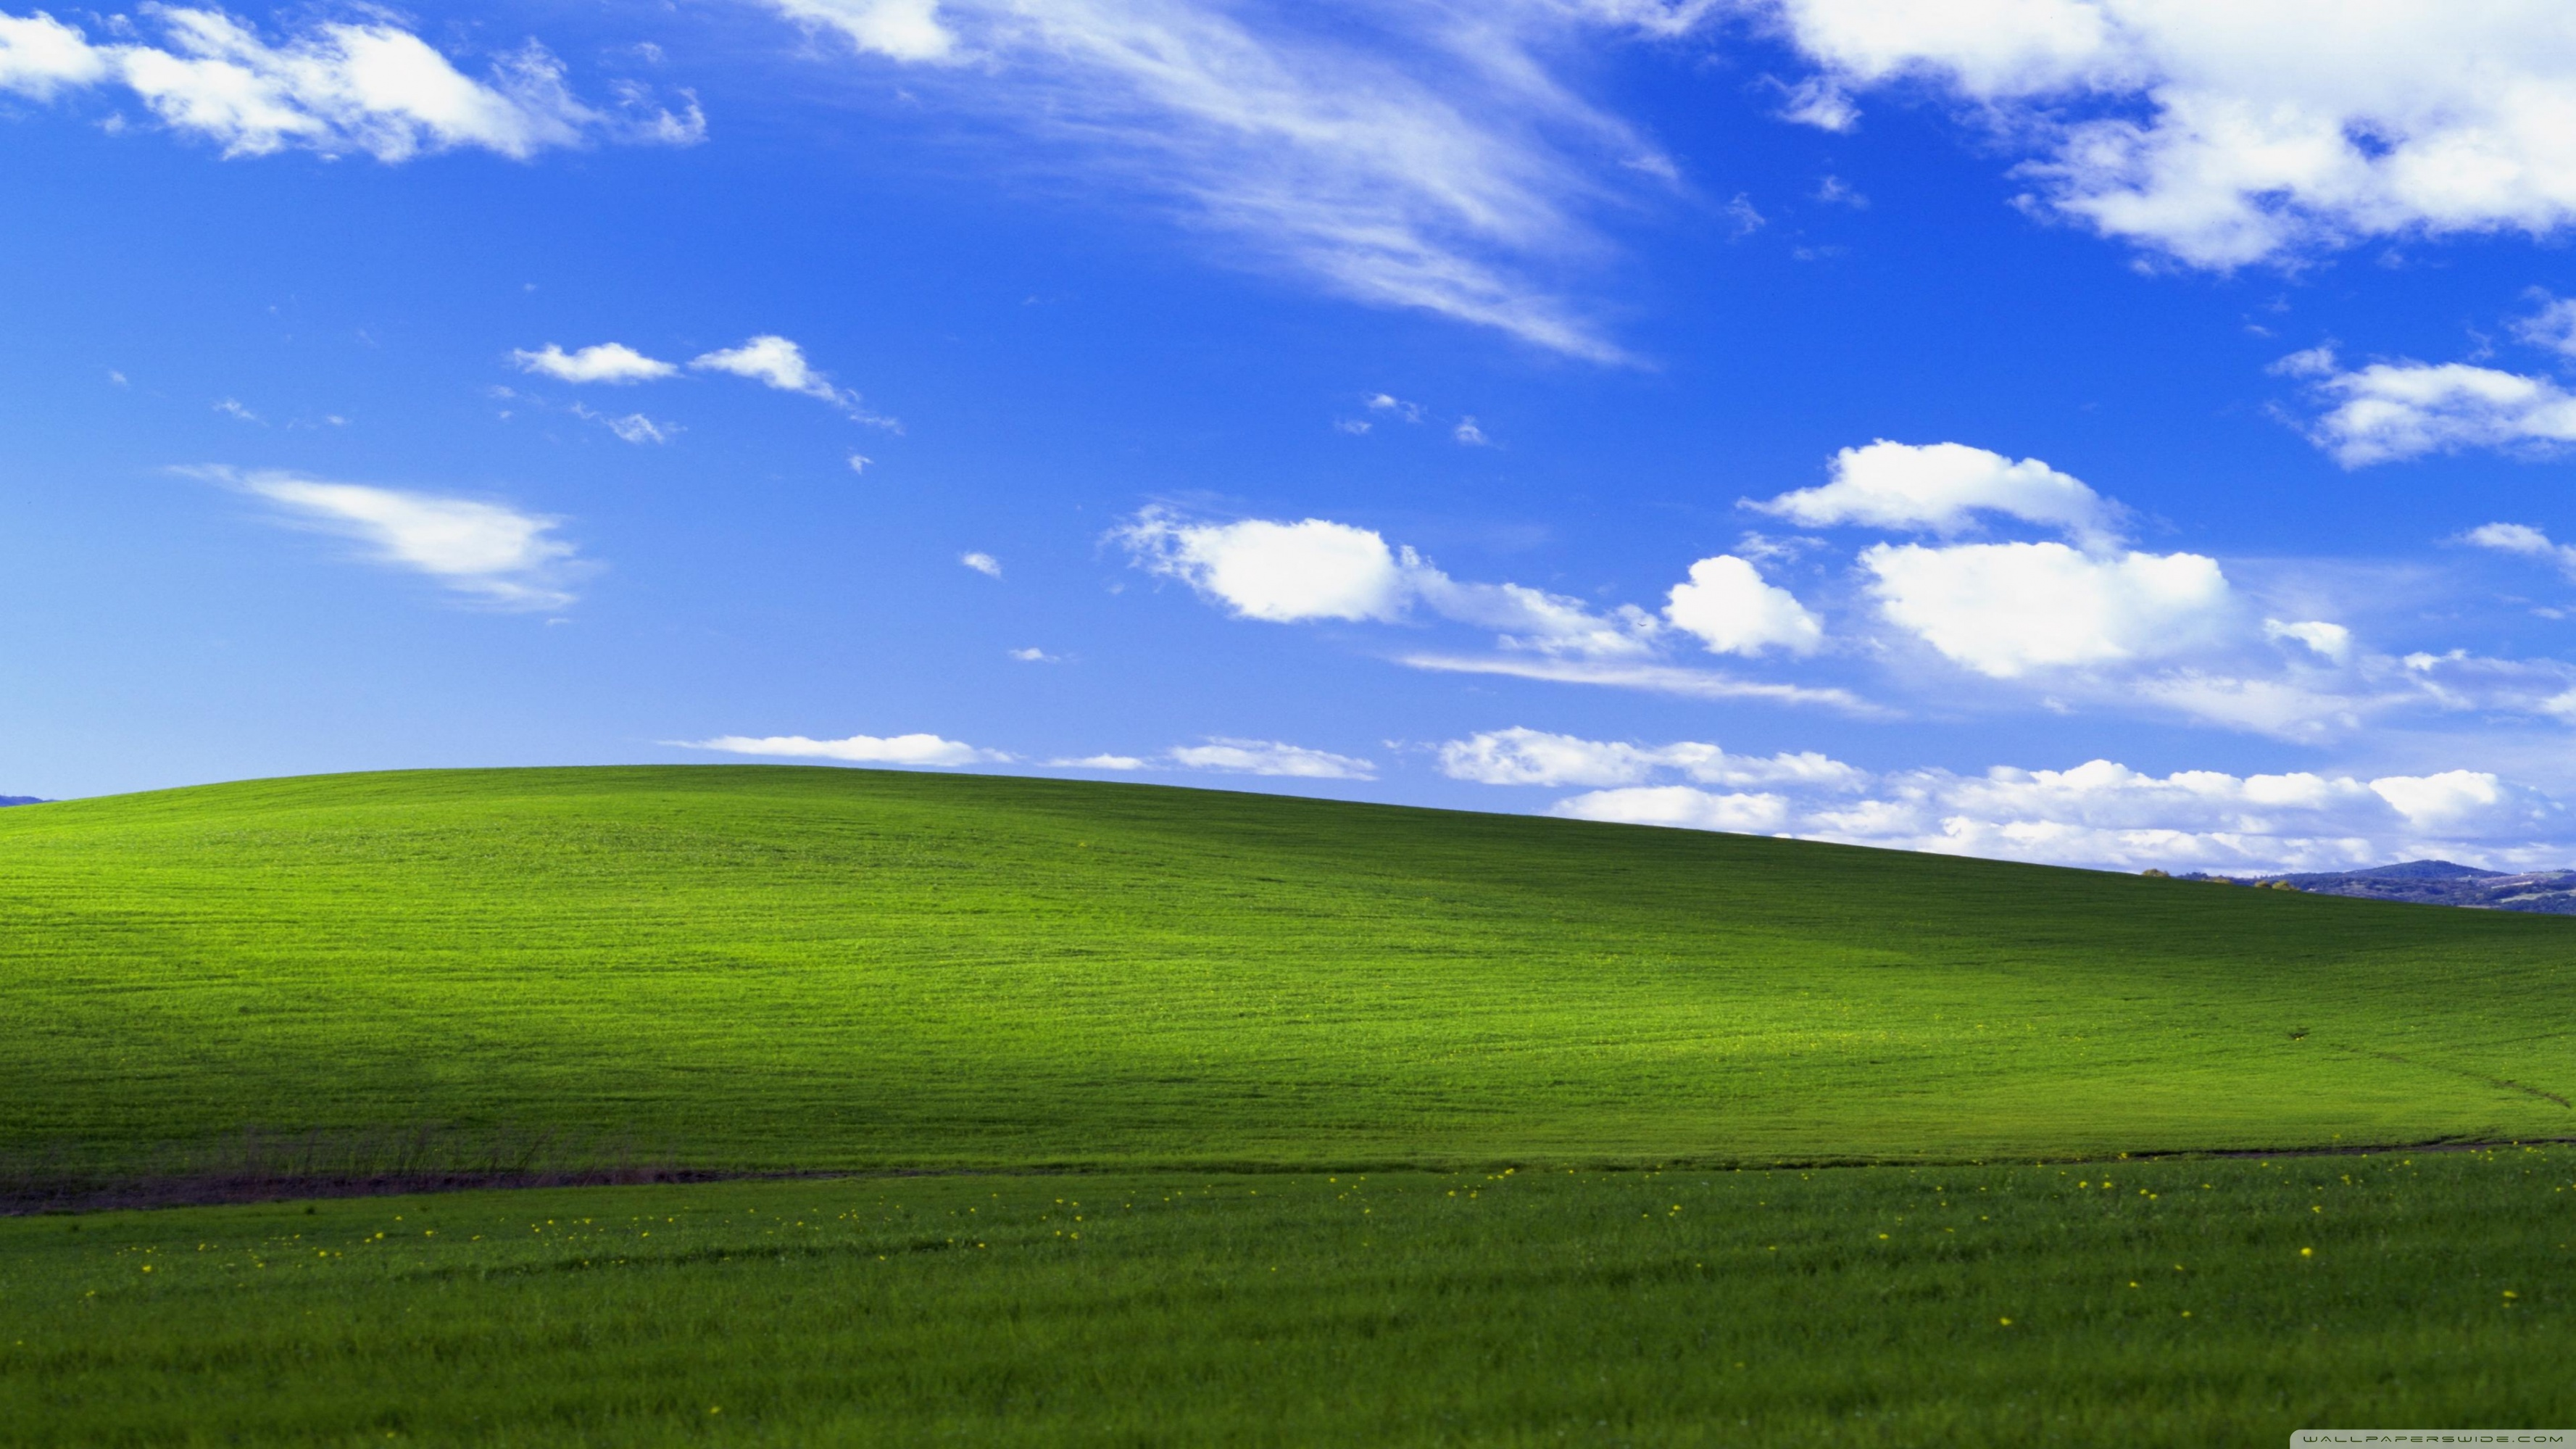 Windows XP Ultra HD Desktop Background Wallpaper for 4K UHD TV 3554x1999